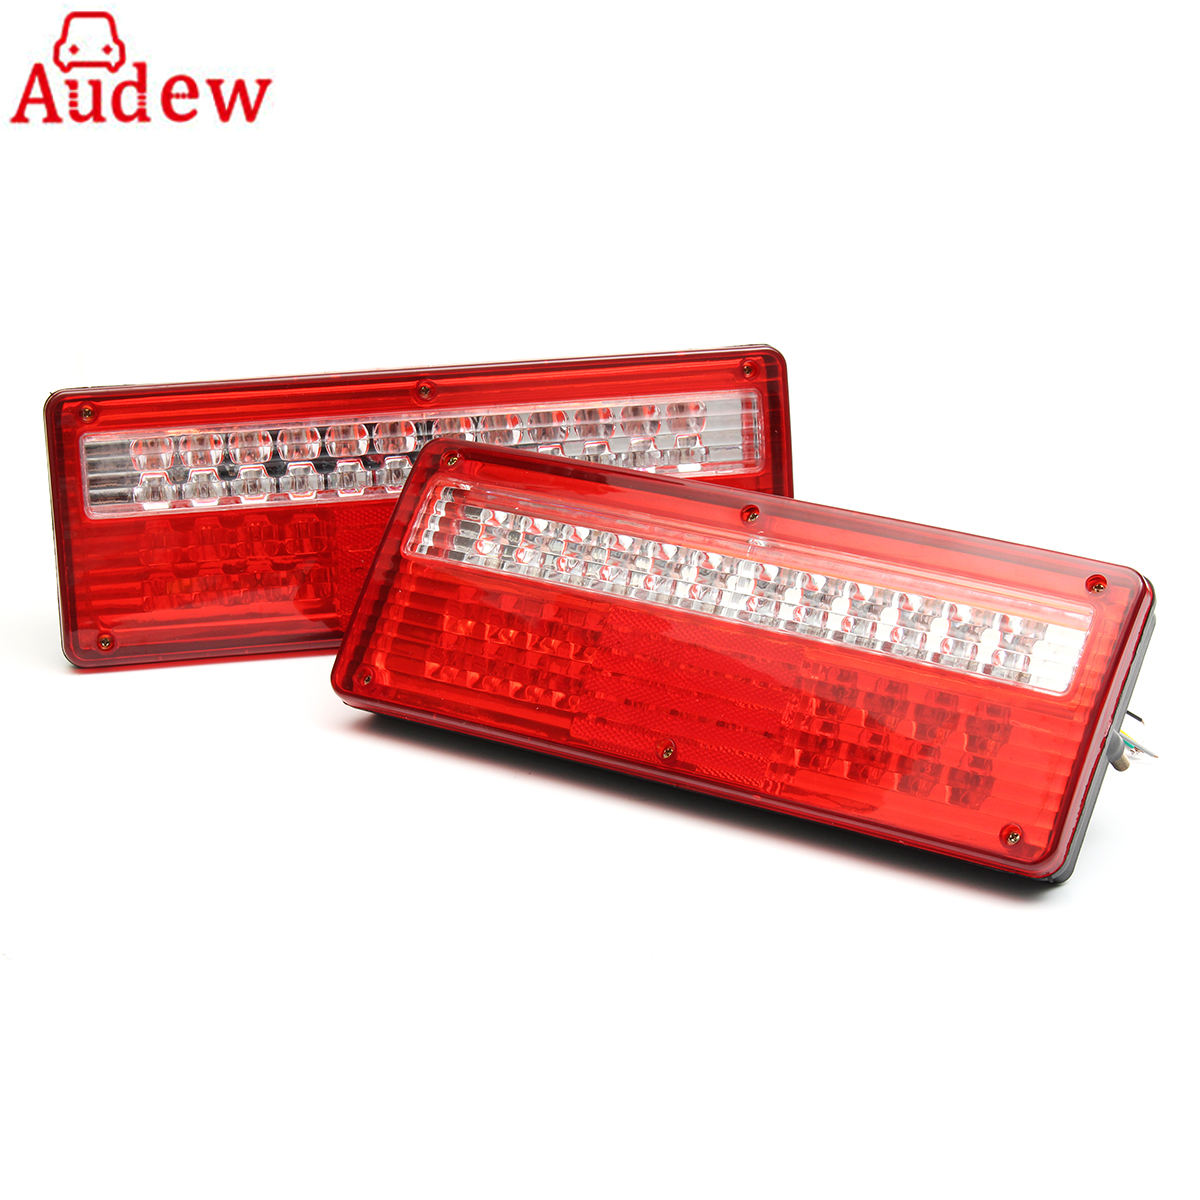 2Pcs Car 6 Function Tail reverse Light Turn Lamp brake Stop Light 24V LED Lorry Trailer Truck Caravan Tail Rear Light Lamp<br>